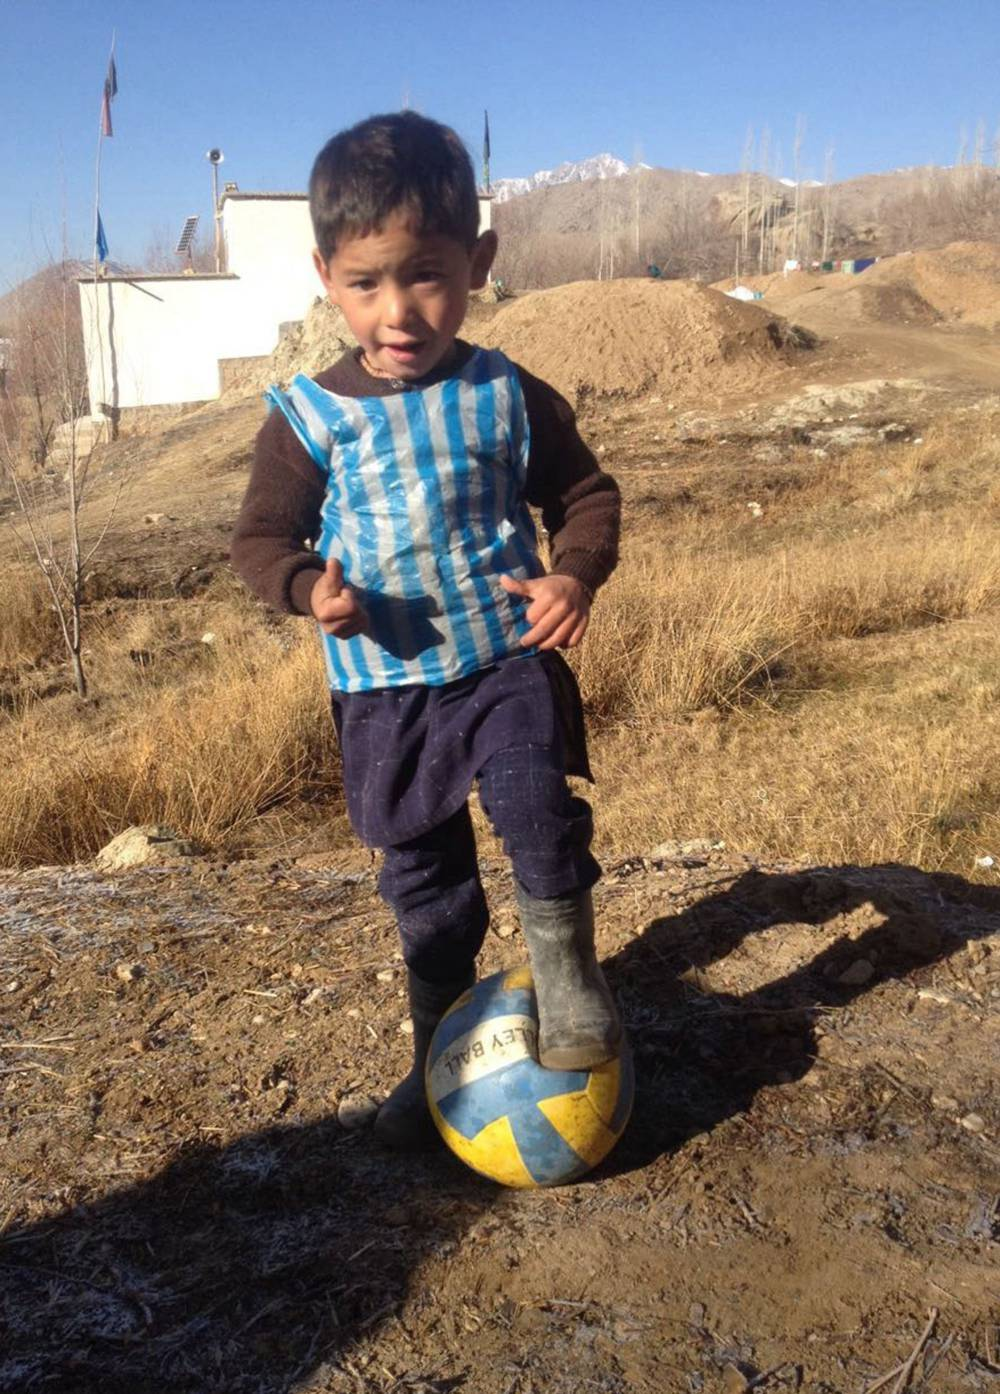 d9756591d Messi hopes to meet Afghan boy in plastic jersey